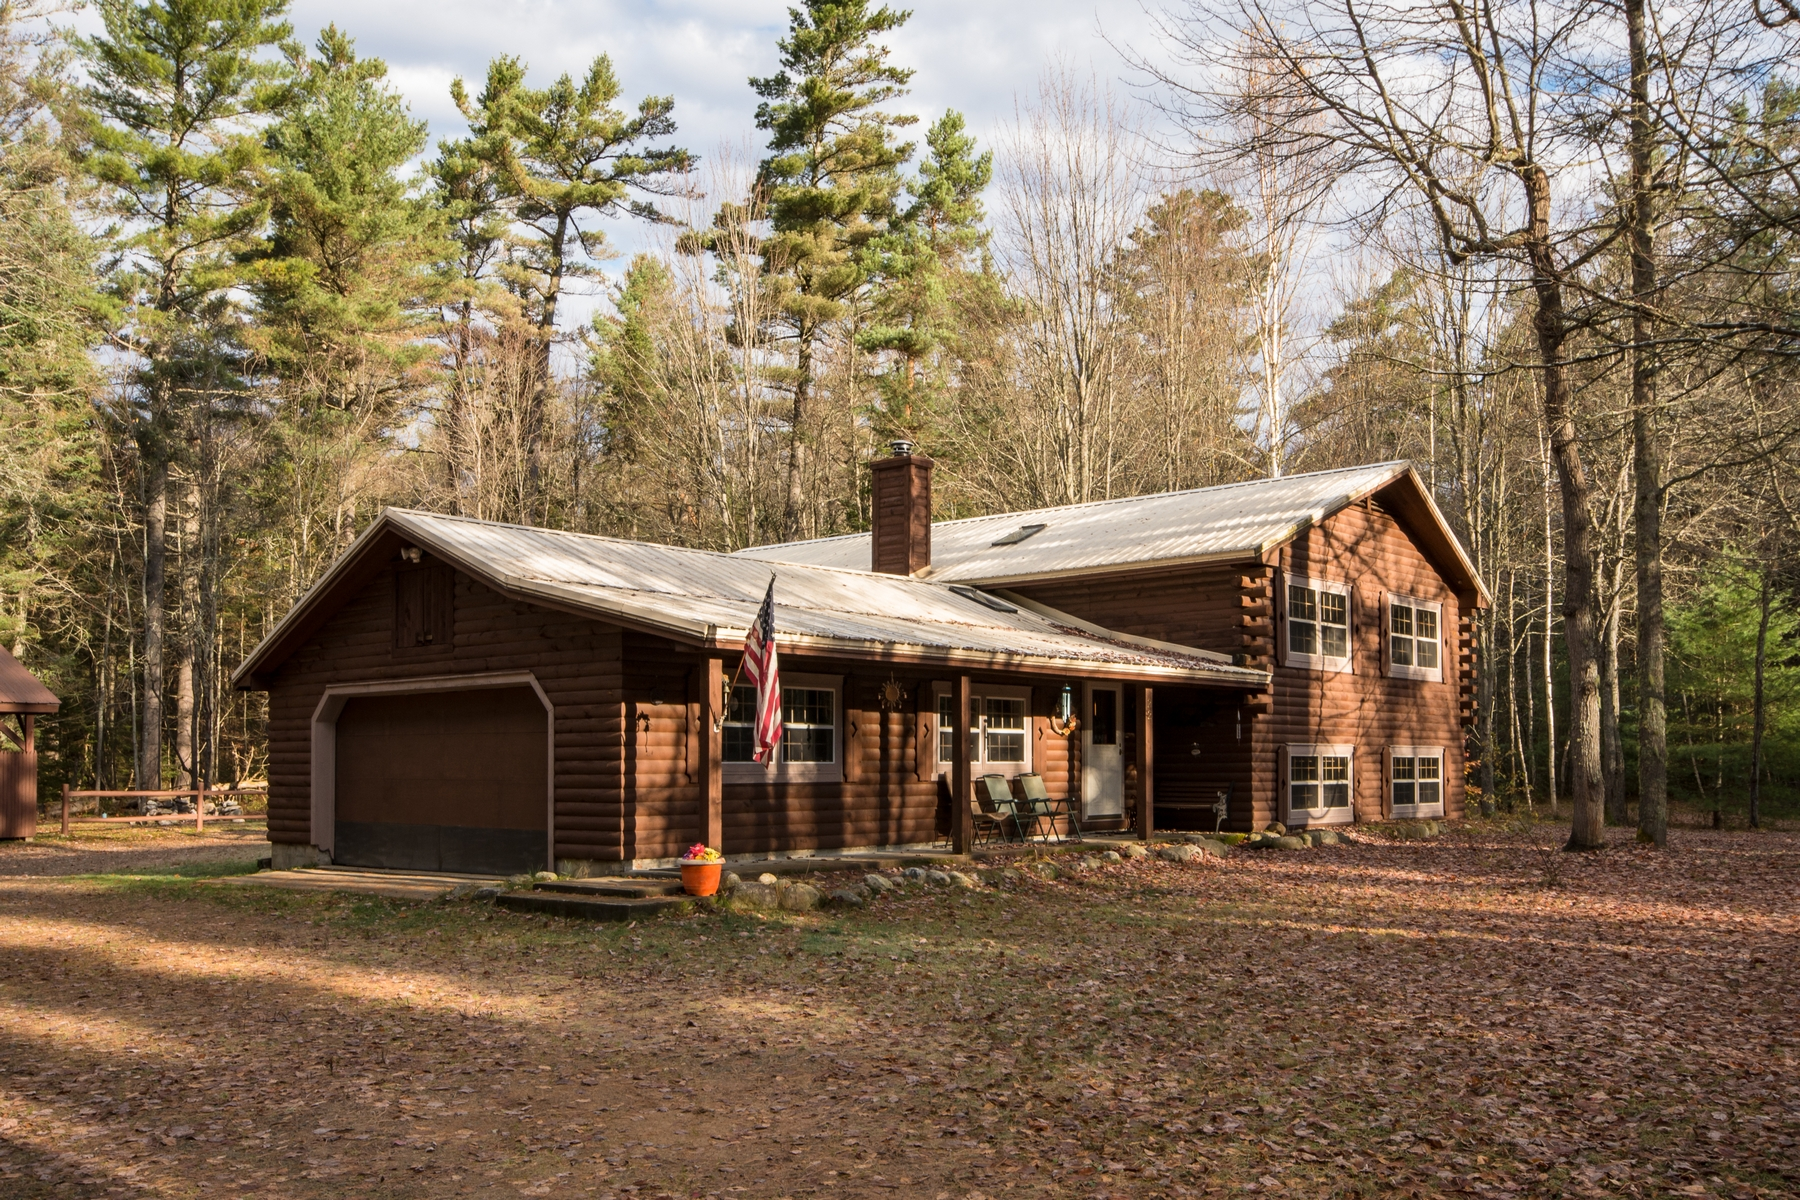 Single Family Home for Sale at Spacious Quiet Water Access Home 22 Bay Ln Rainbow Lake, New York 12976 United States